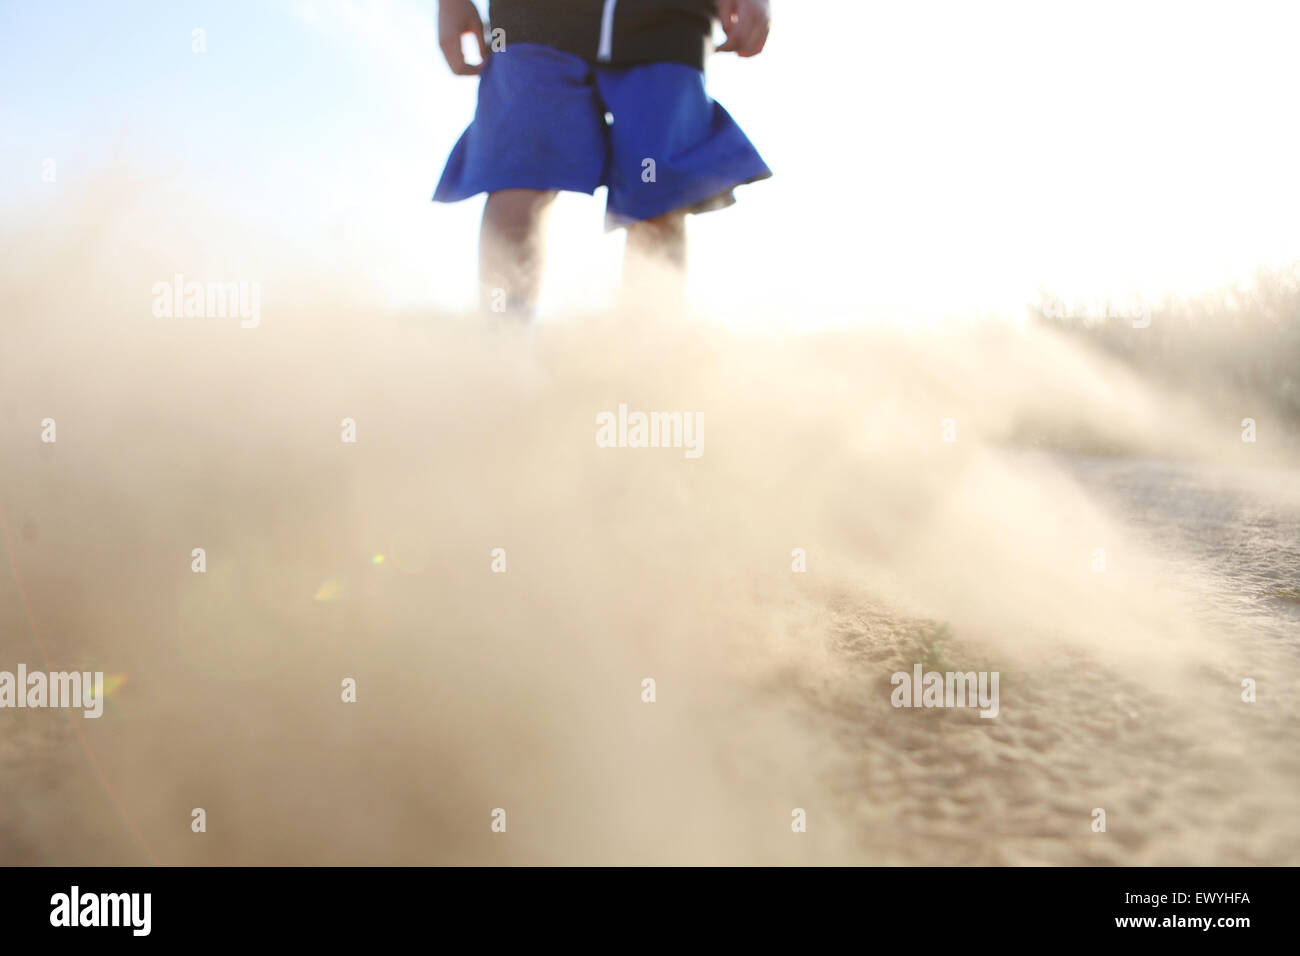 Low angle view of a boy in shorts with sand blowing - Stock Image